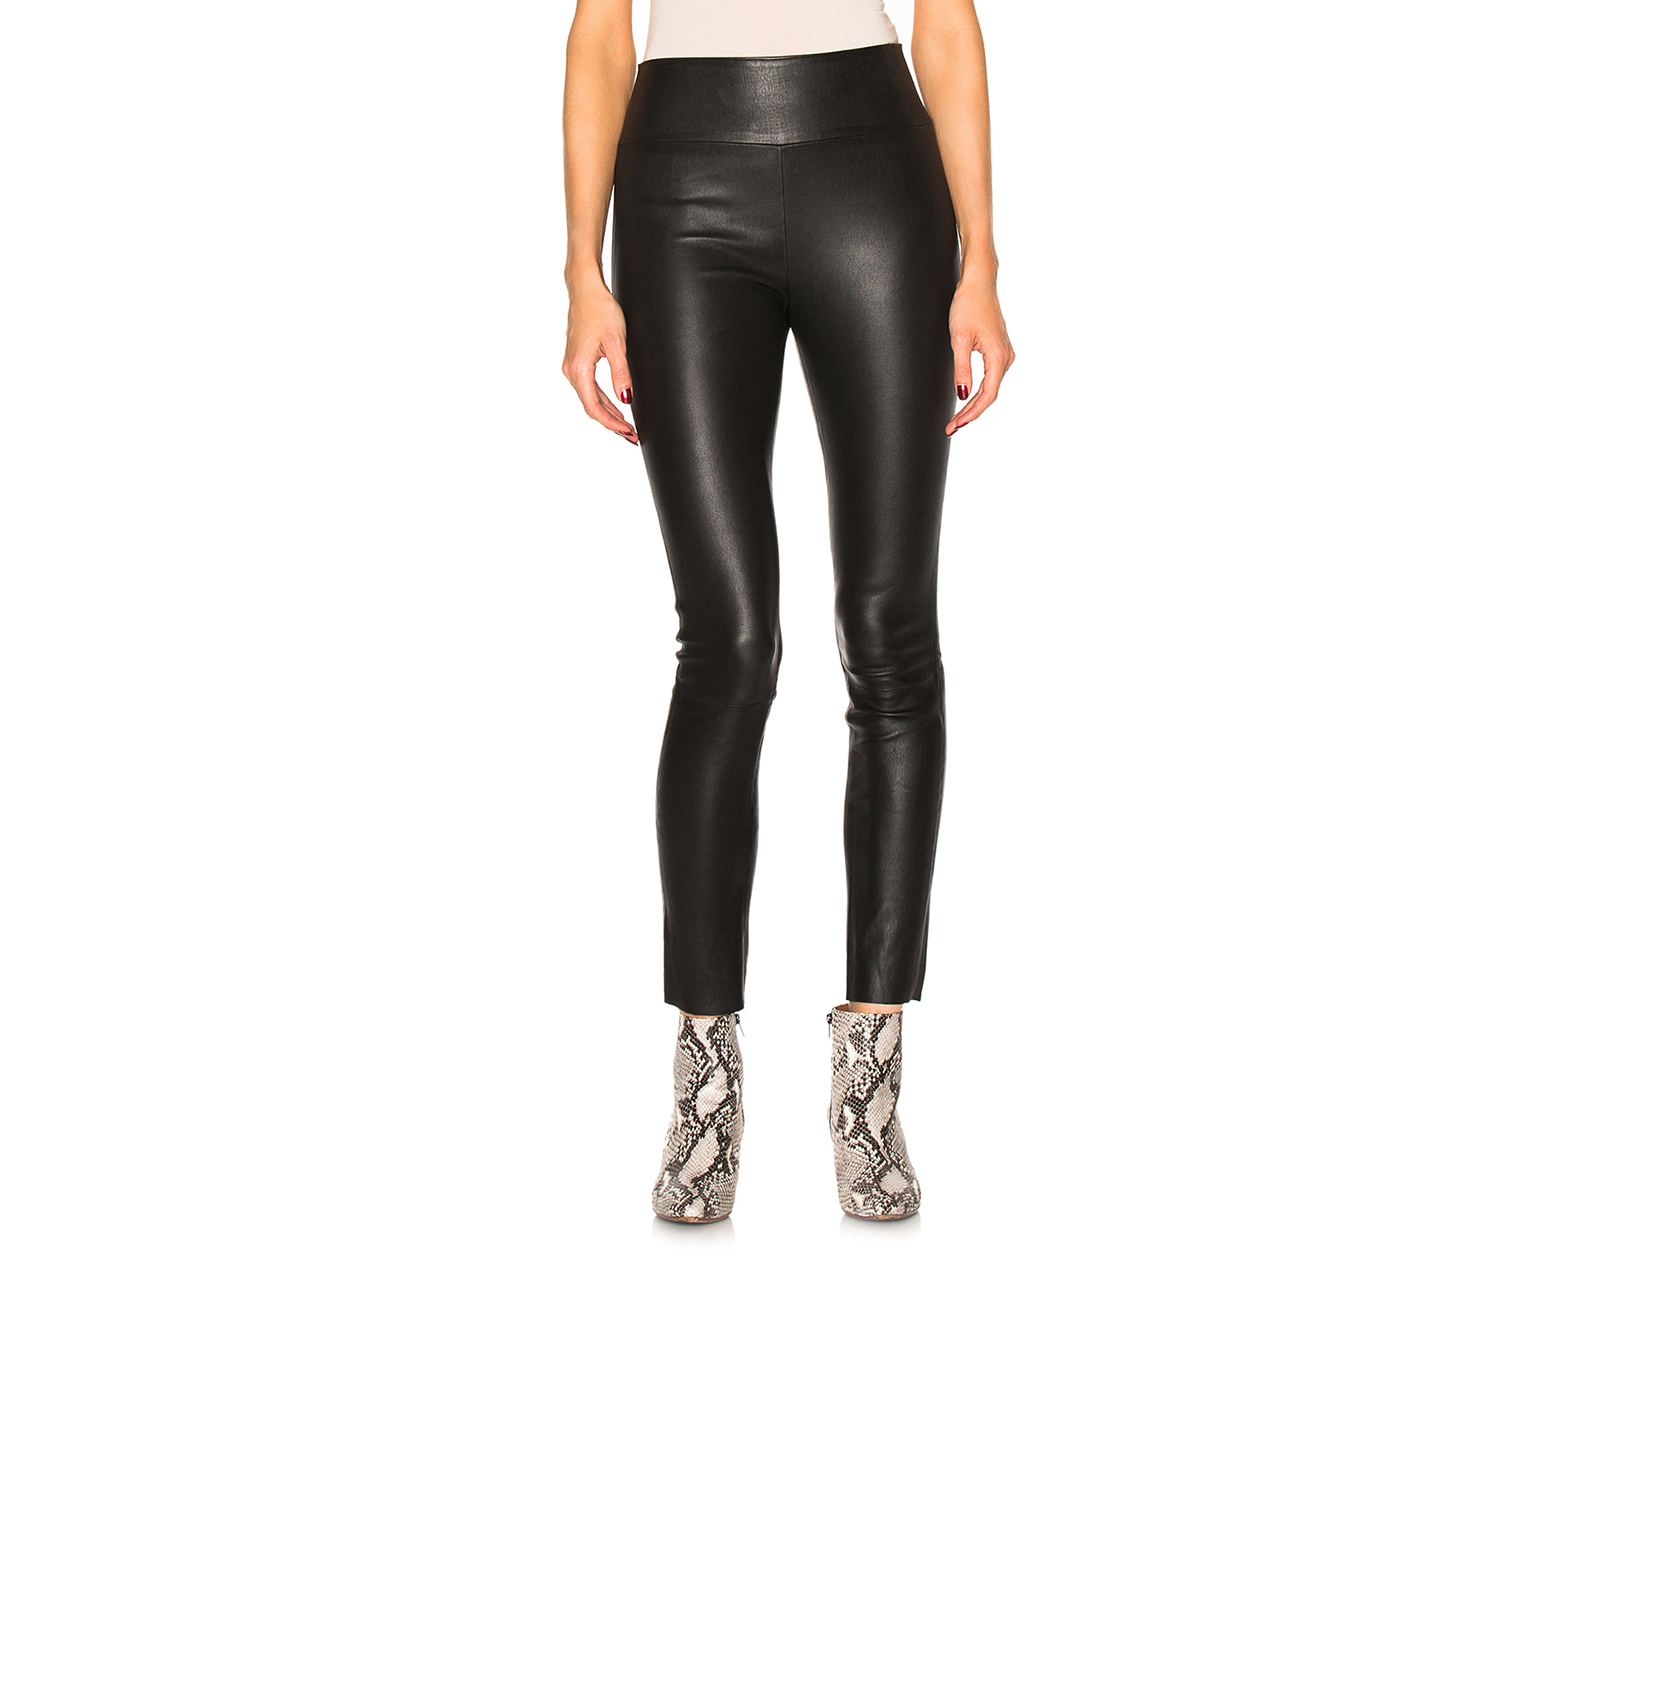 SPRWMN high waist leather leggings